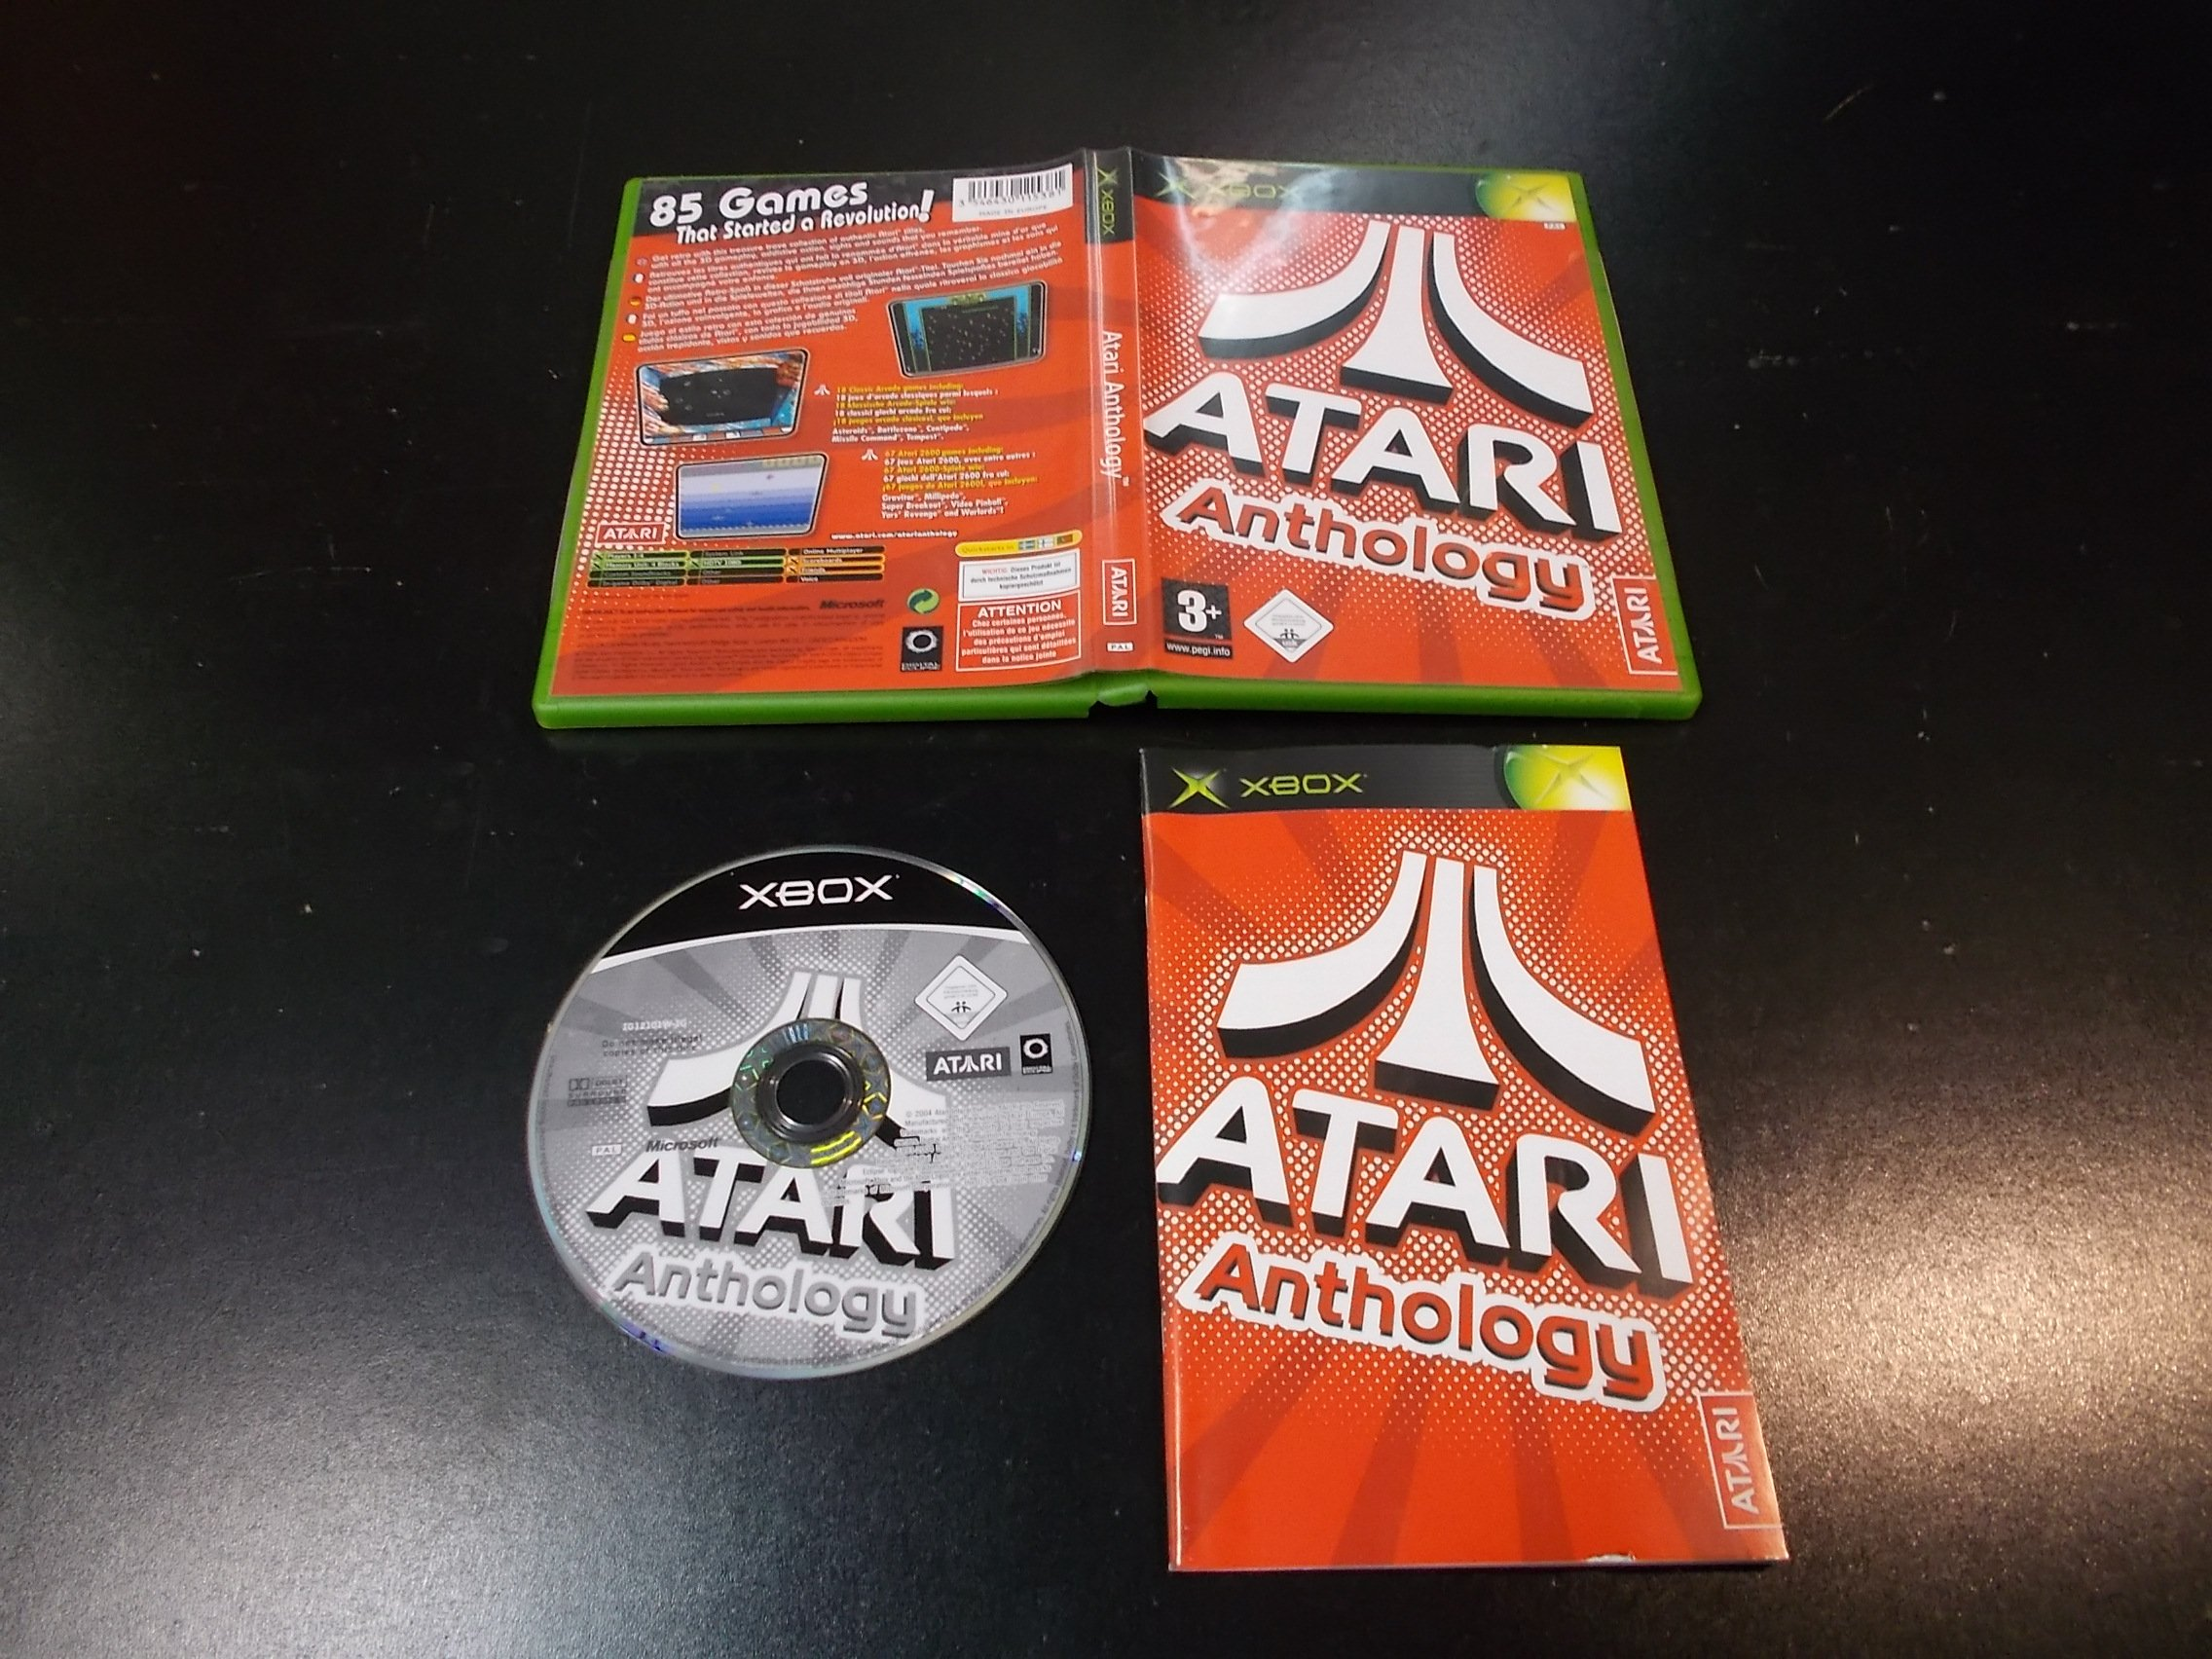 ATARI Anthology - GRA Xbox Sklep